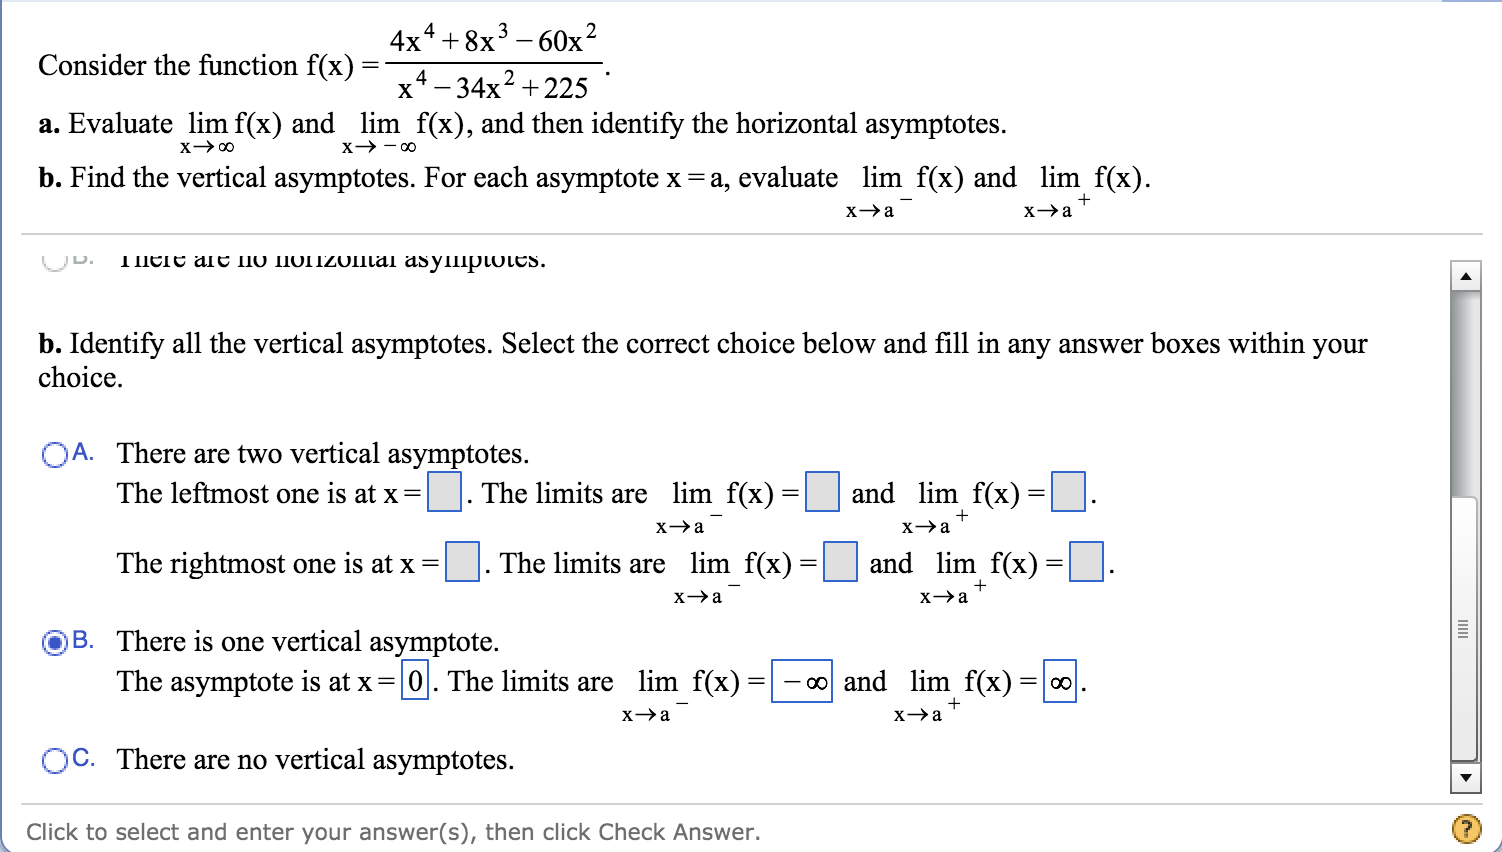 solve calculus homework help coursework help sites welcome to graphical universal mathematical expression simplifier and algebra solver gumess online math problem solver if your math homework includes